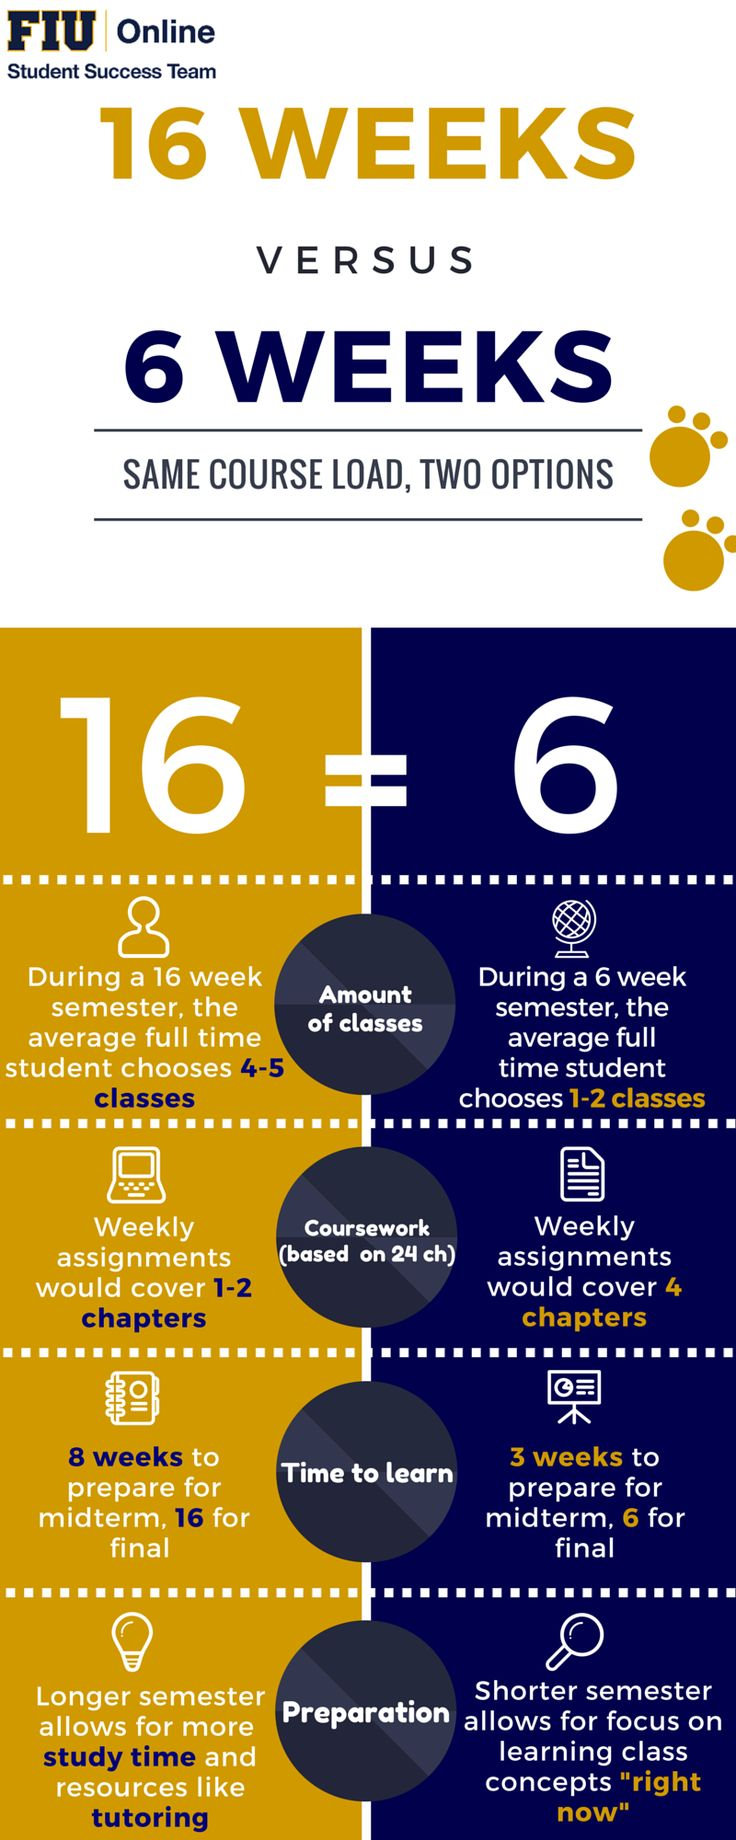 Final exam study guide doc at florida state university studyblue - Check Out The Difference Between Our Coursework Loads For 6 Versus 16 Week Semesters